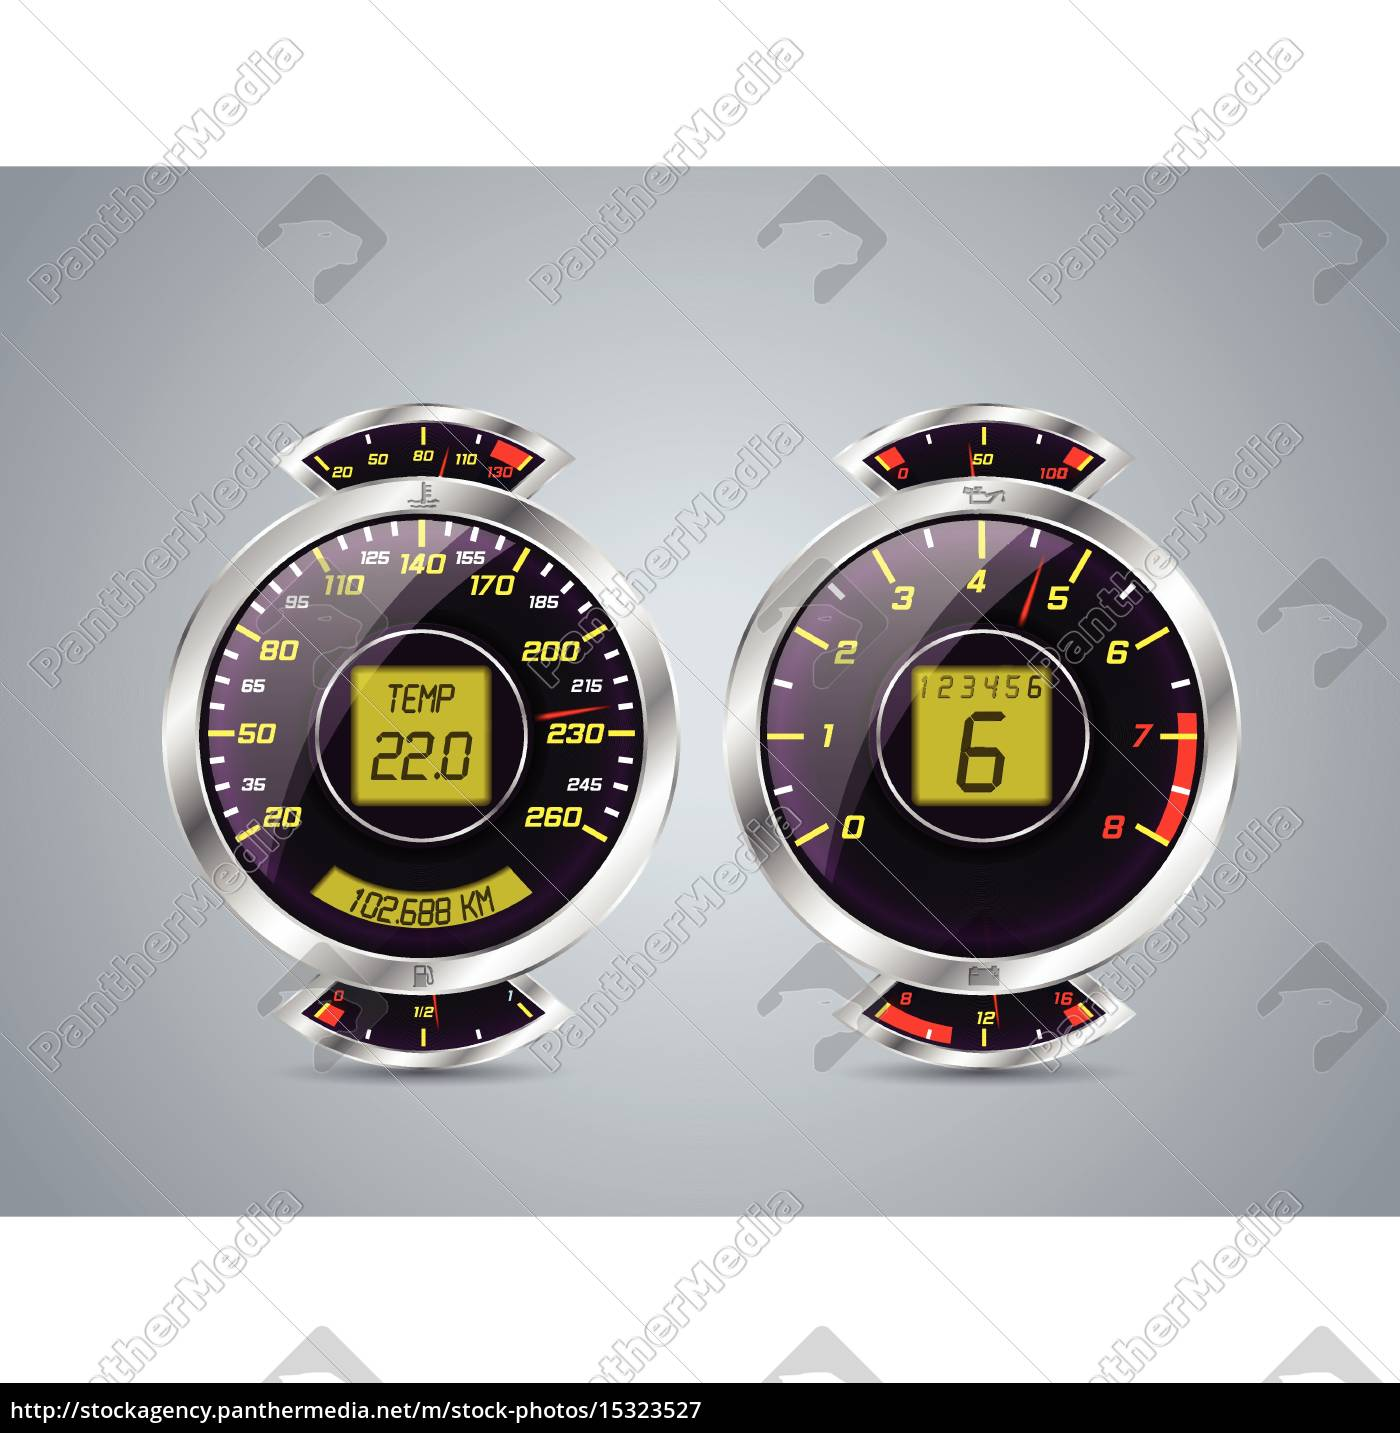 royalty free vector 15323527 - Shiny metallic speedometer and rev counter